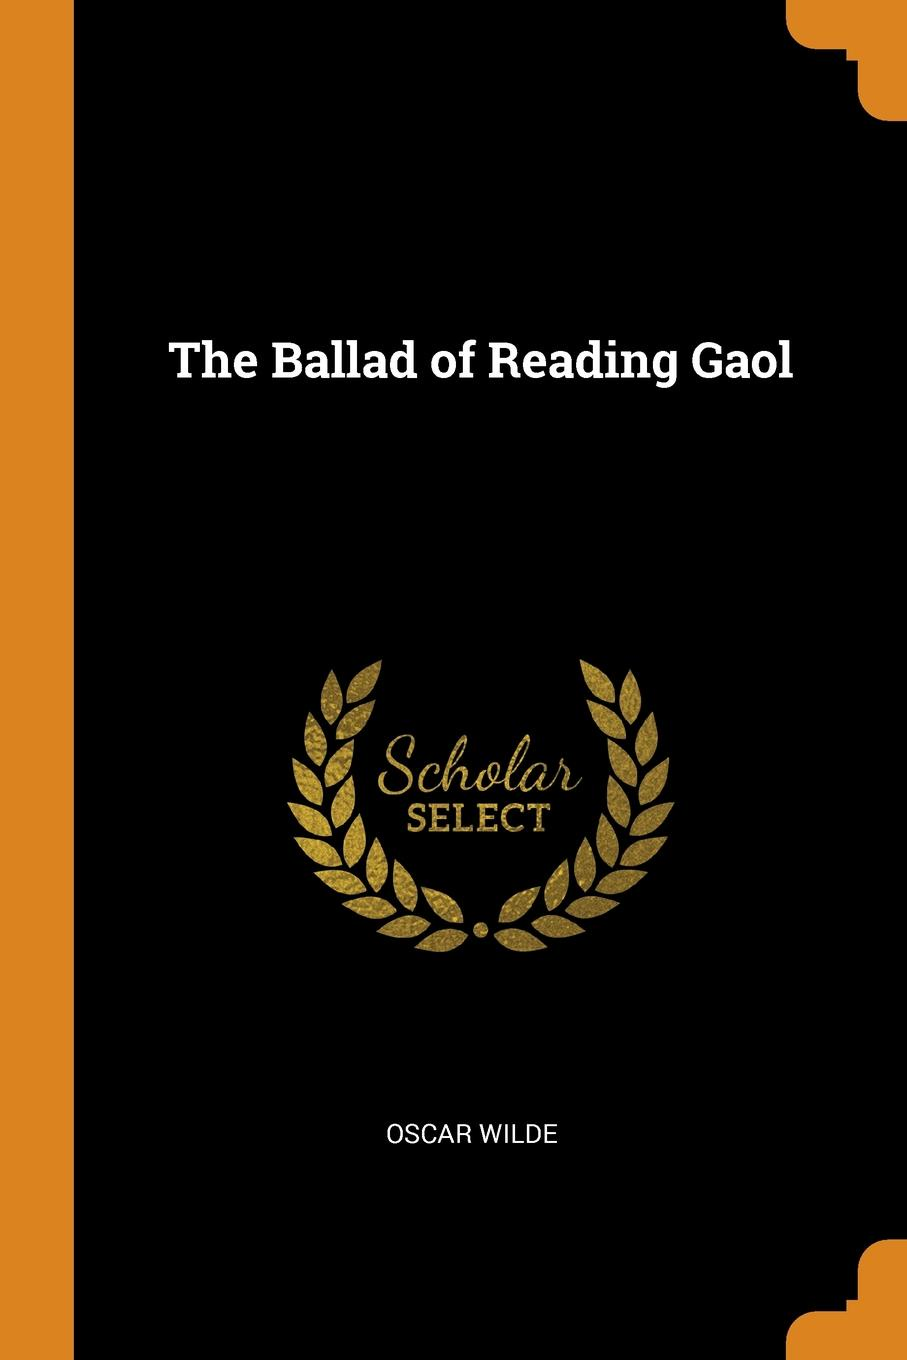 Oscar Wilde The Ballad of Reading Gaol wilde oscar de profundis the ballad of reading gaol